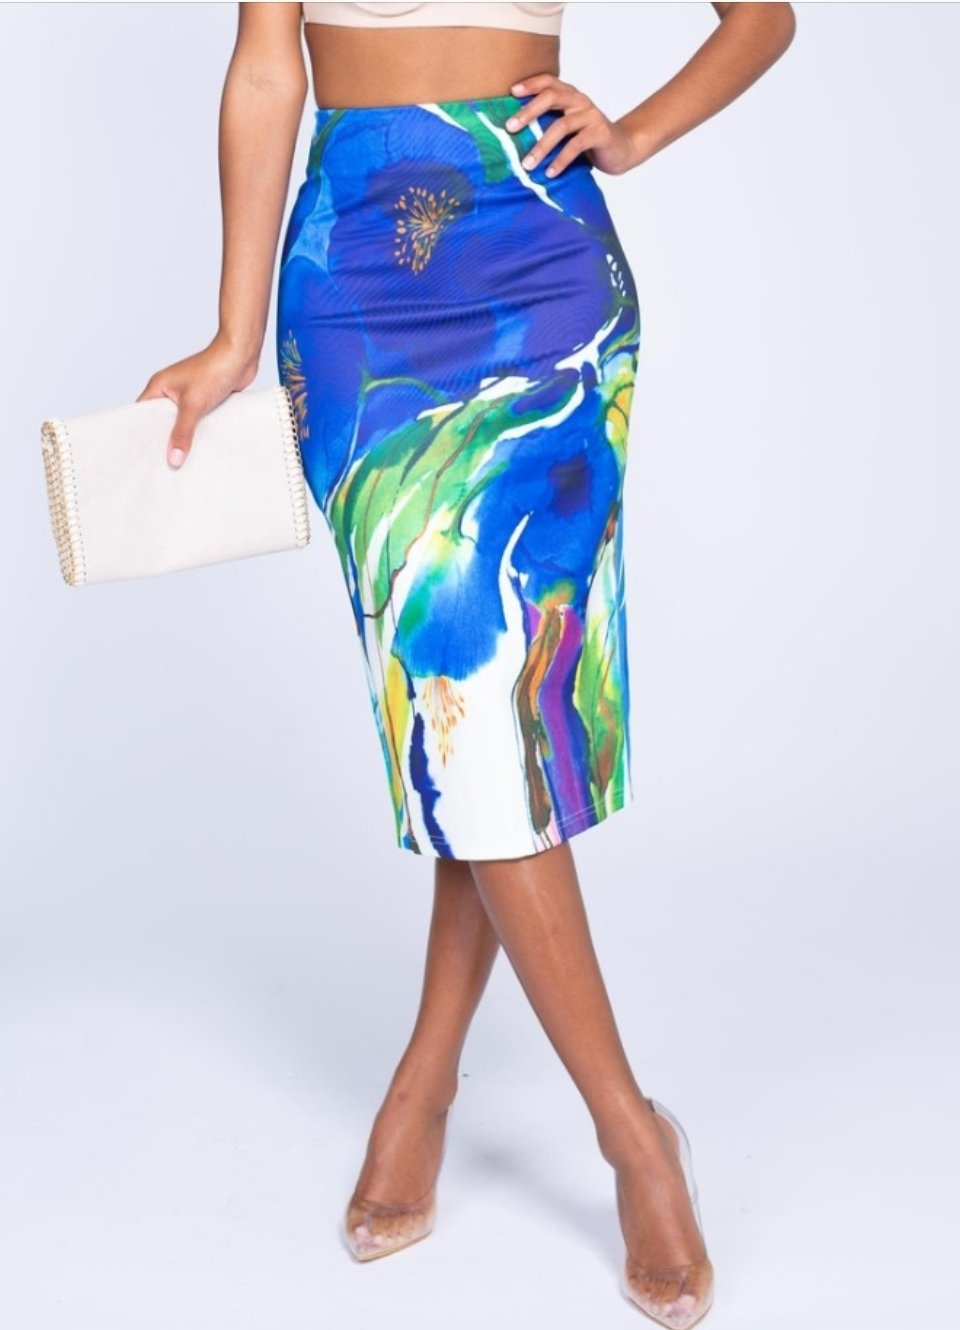 Front lower body view of plus size model in a Floral Watercolor Pencil Skirt